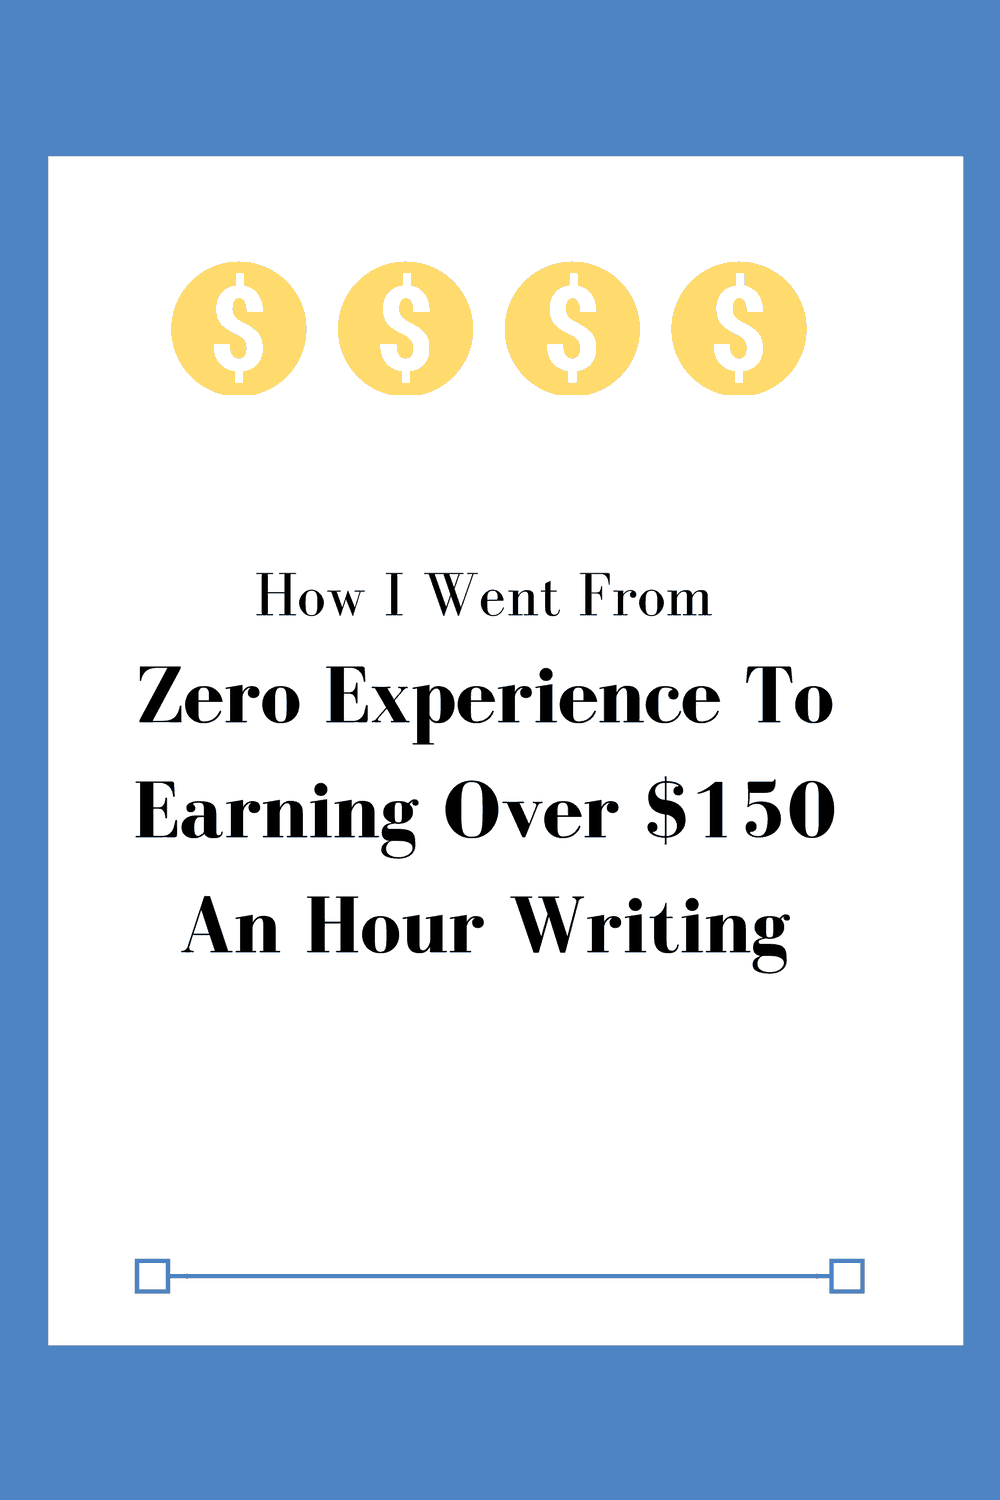 lance writing jobs for beginners from zero experience to over lance writing jobs for beginners